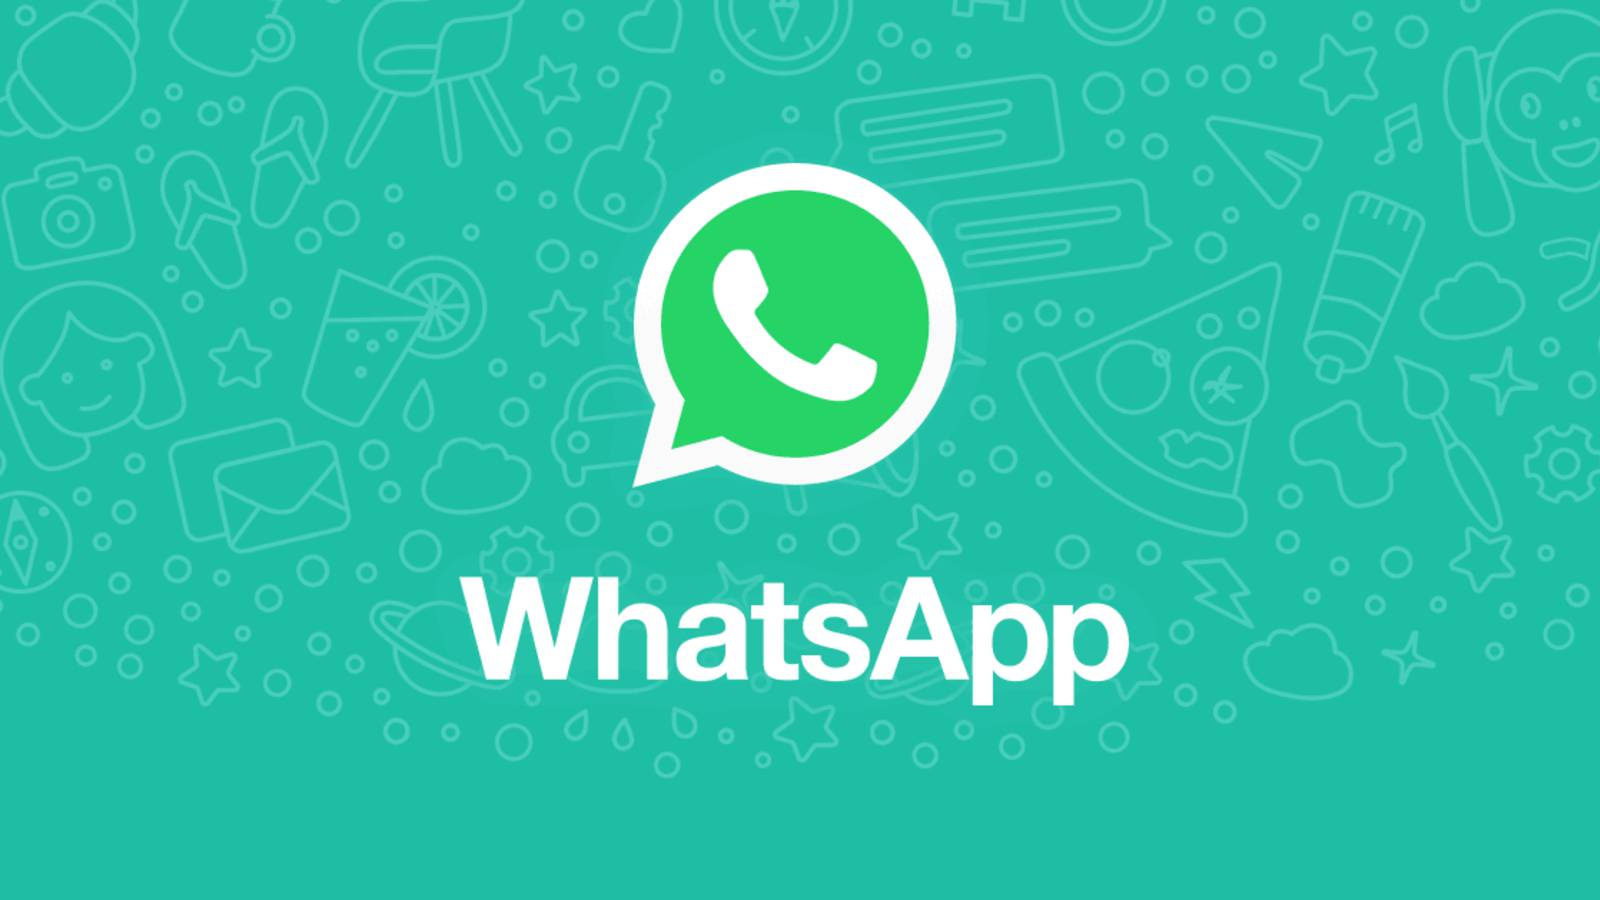 whatsapp ios ipad chat